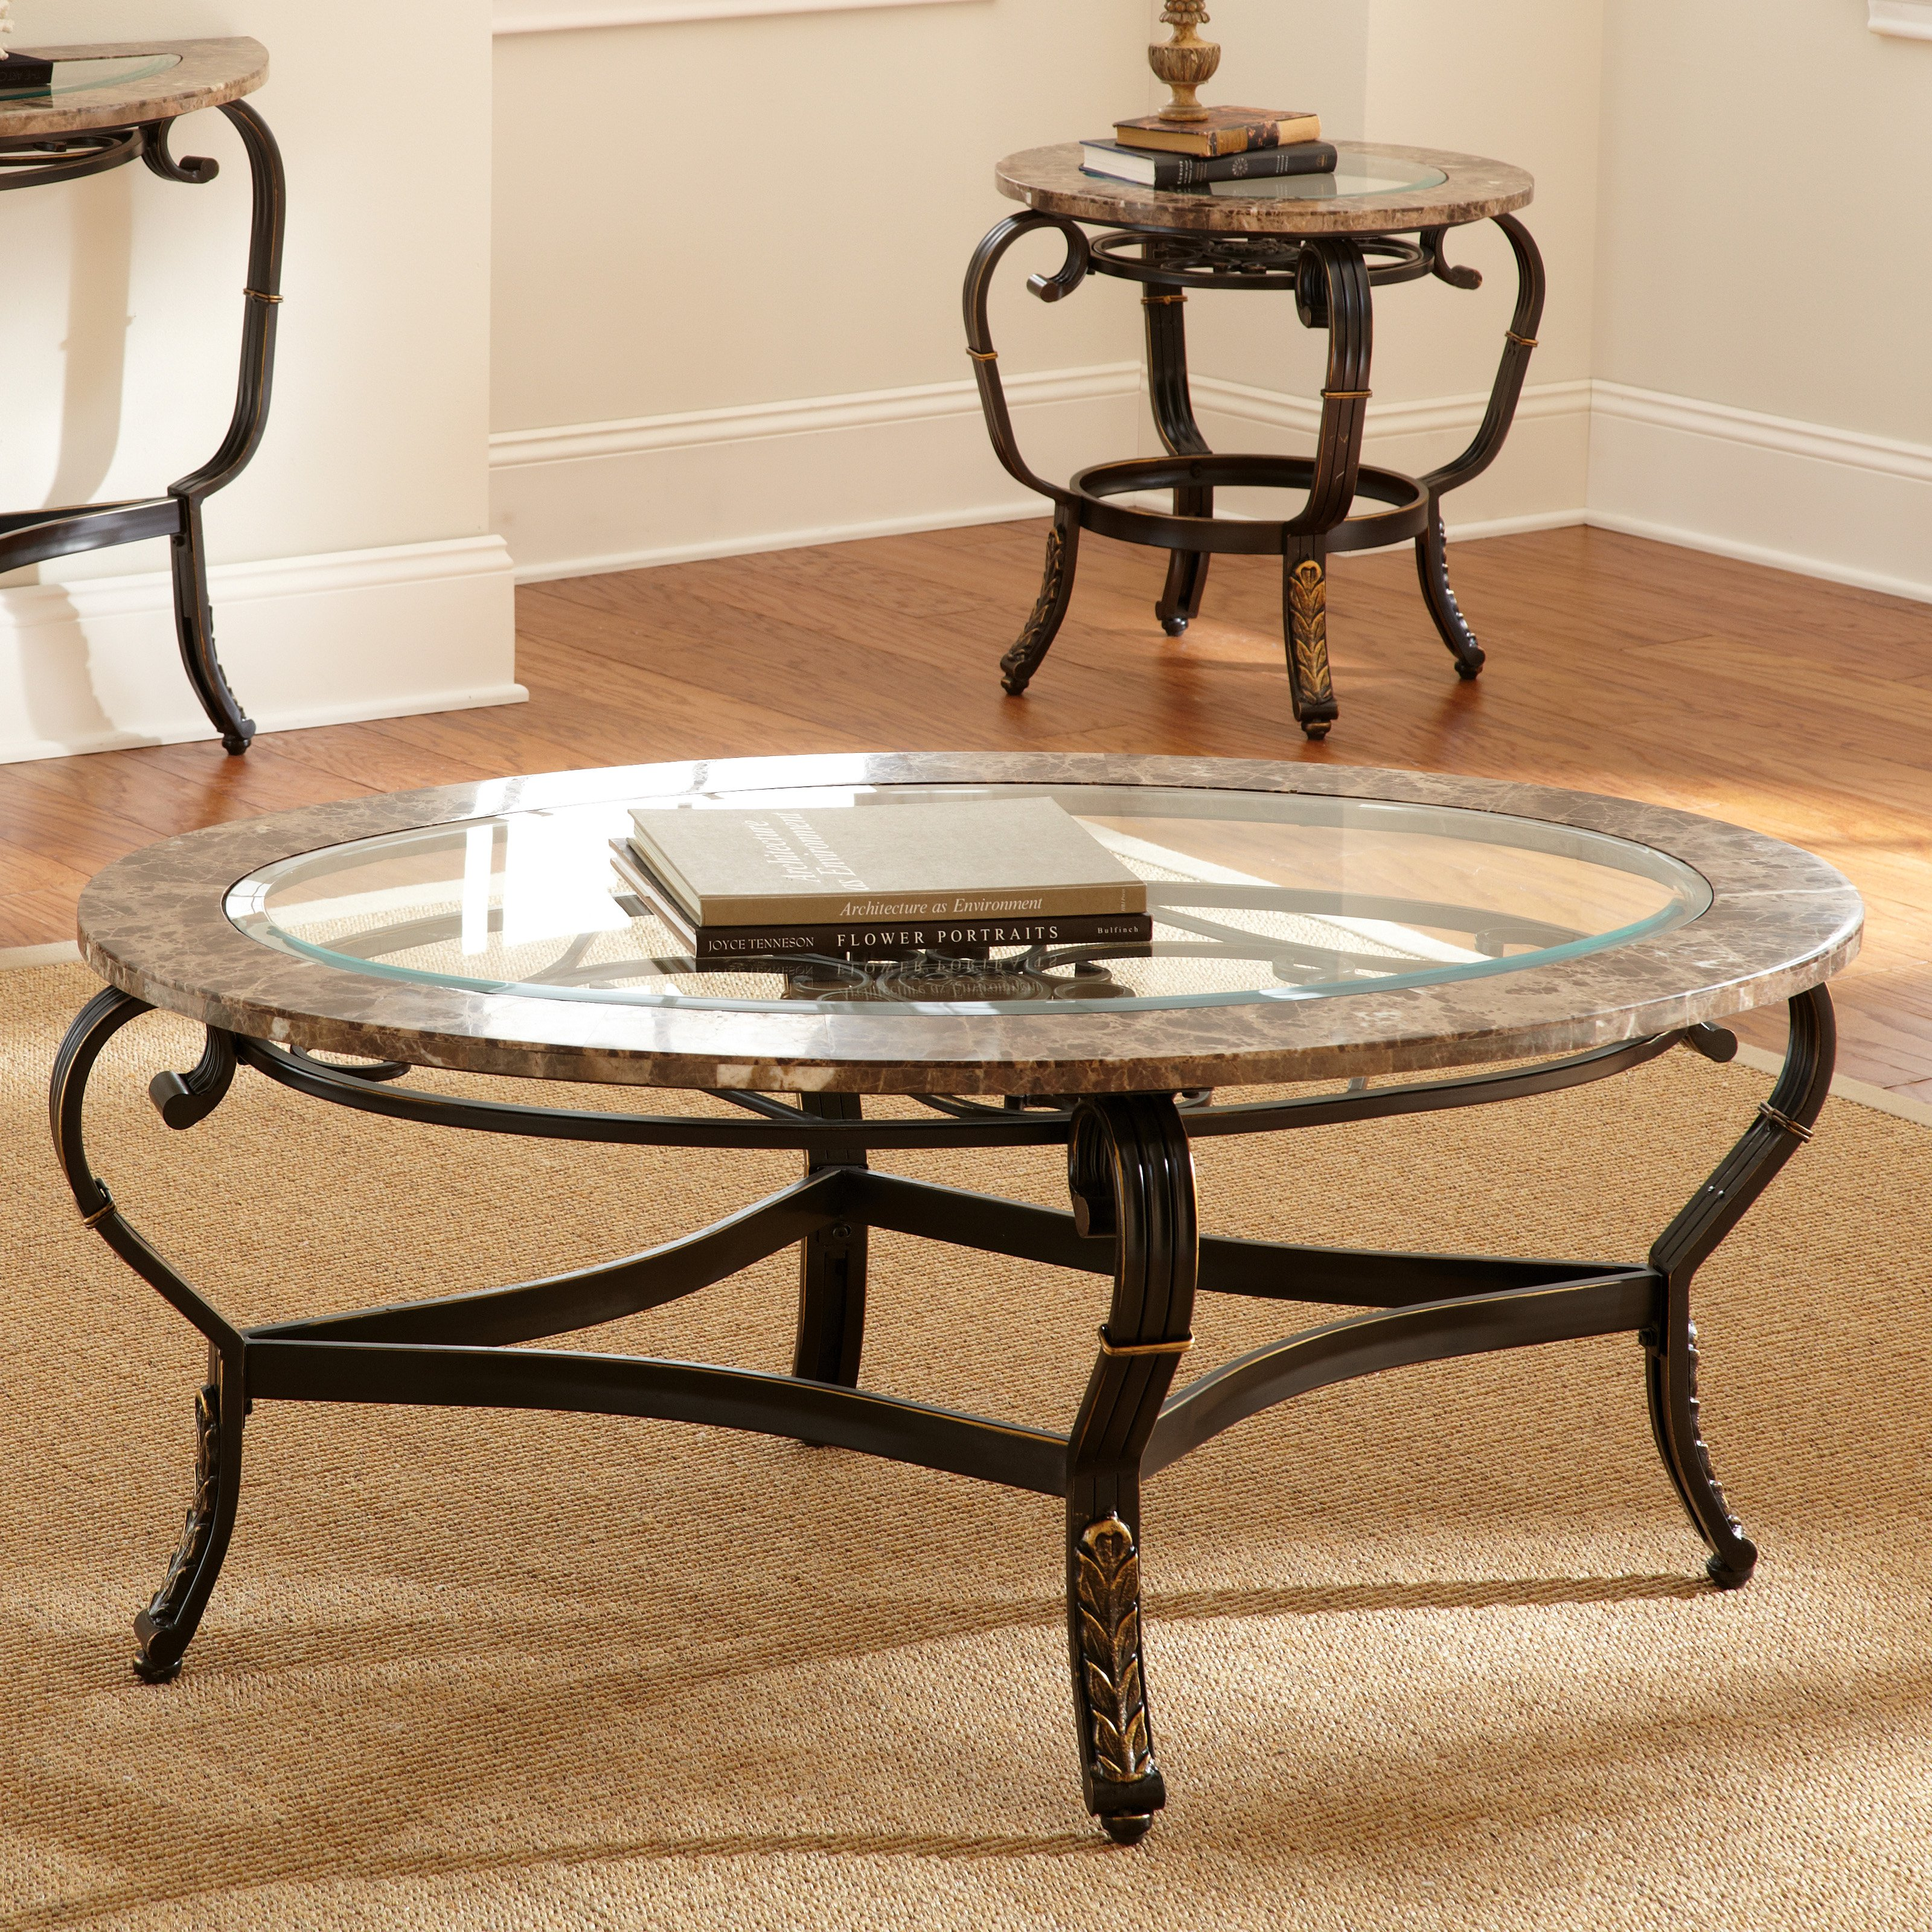 round table legs the terrific unbelievable black iron and glass charming wrought side coffee with marble top elegant tables end ethan allen accent tree trunk seats small modern